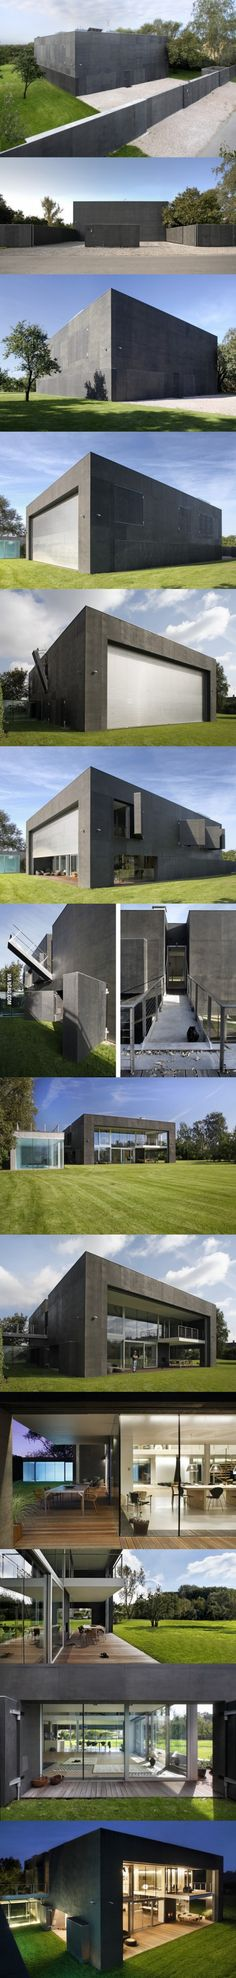 House for the Zombie Apocalypse - Because Locking The Front Door Is Too Mainstream